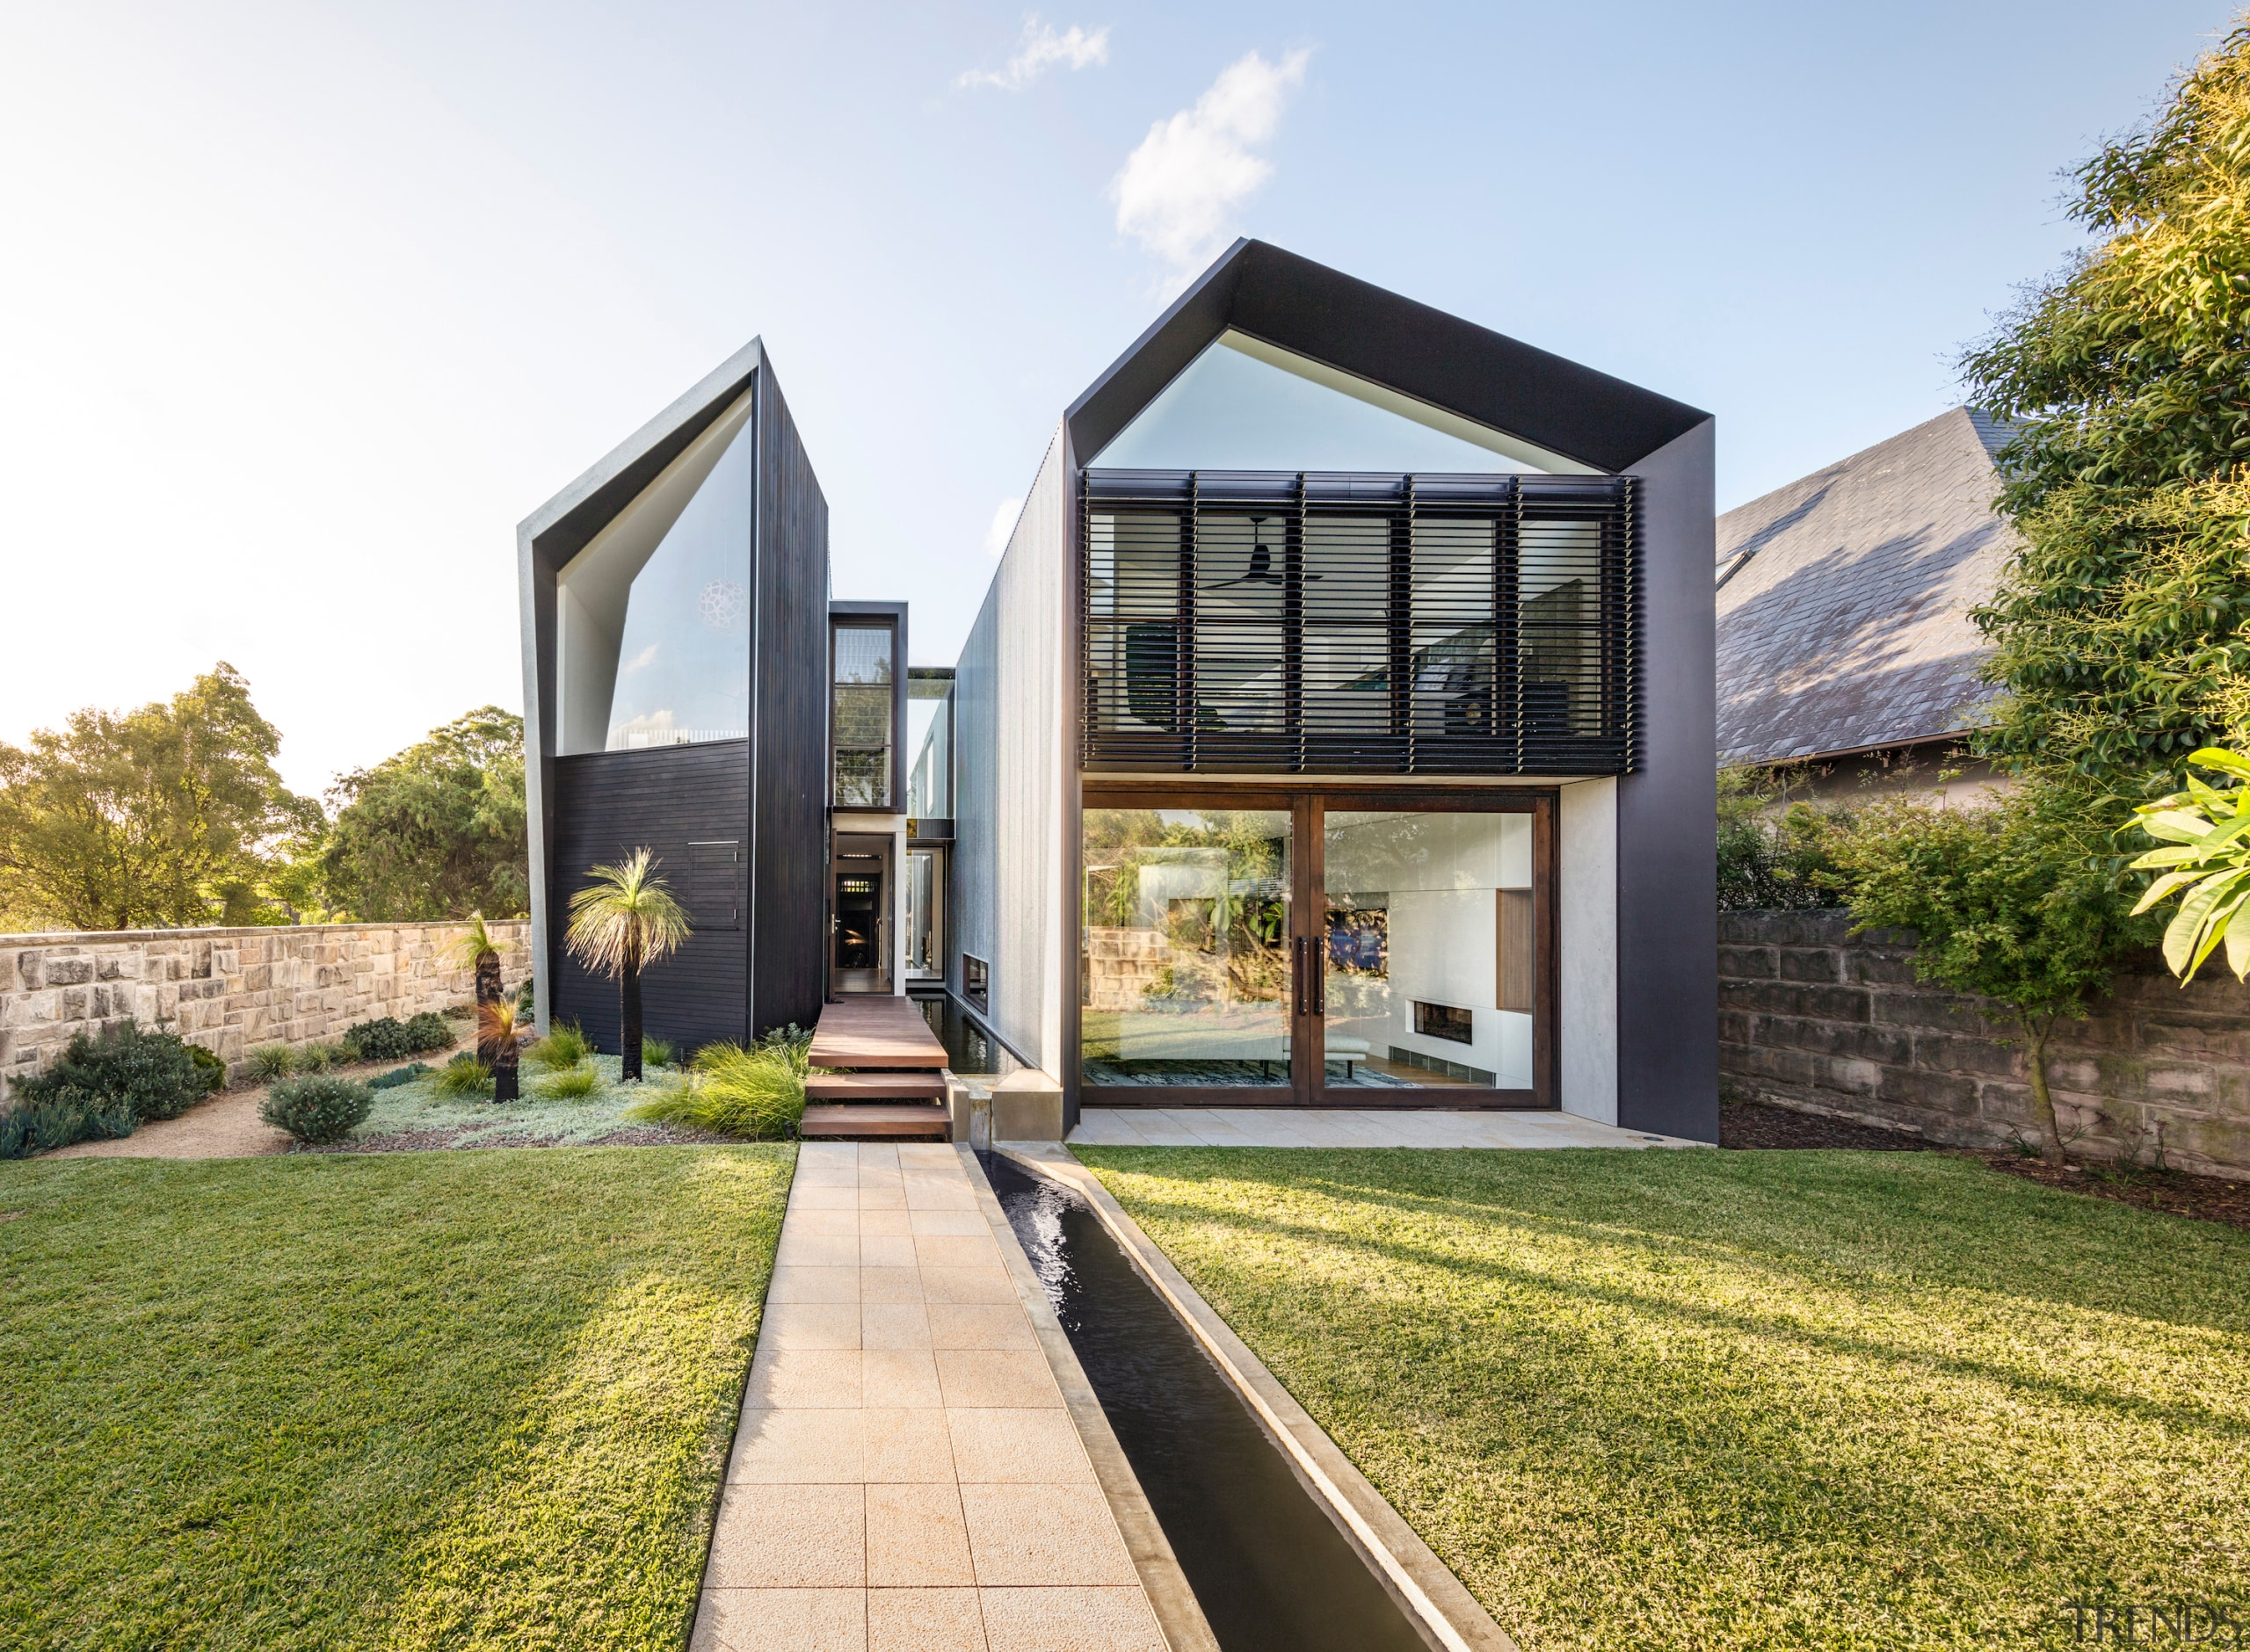 Runner-up – CplusC Architectural Workshop – 2018 TIDA architecture, estate, facade, home, house, property, real estate, residential area, white